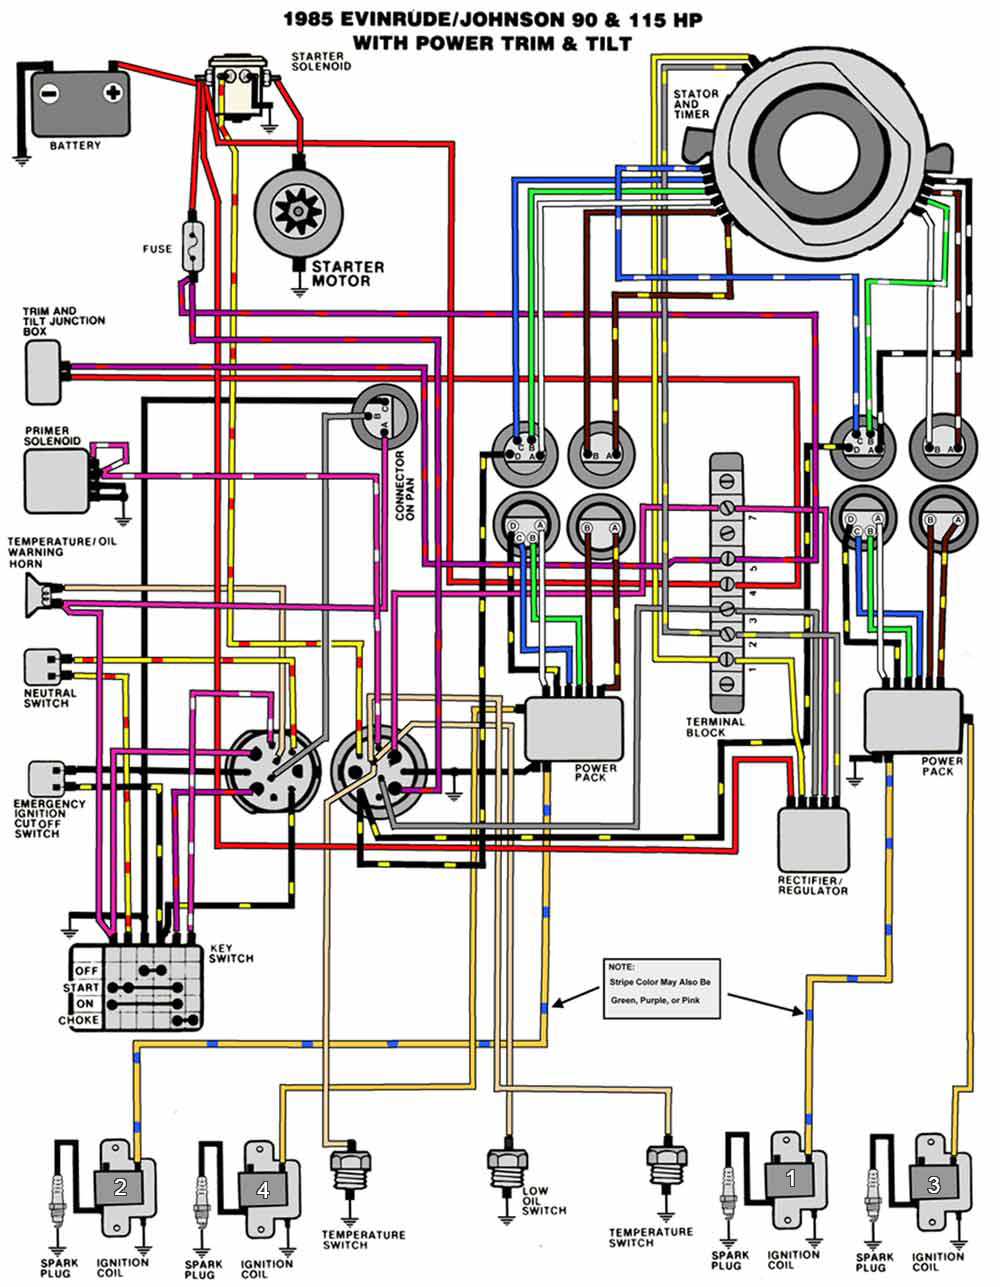 1985_90_115TnT mastertech marine evinrude johnson outboard wiring diagrams  at edmiracle.co